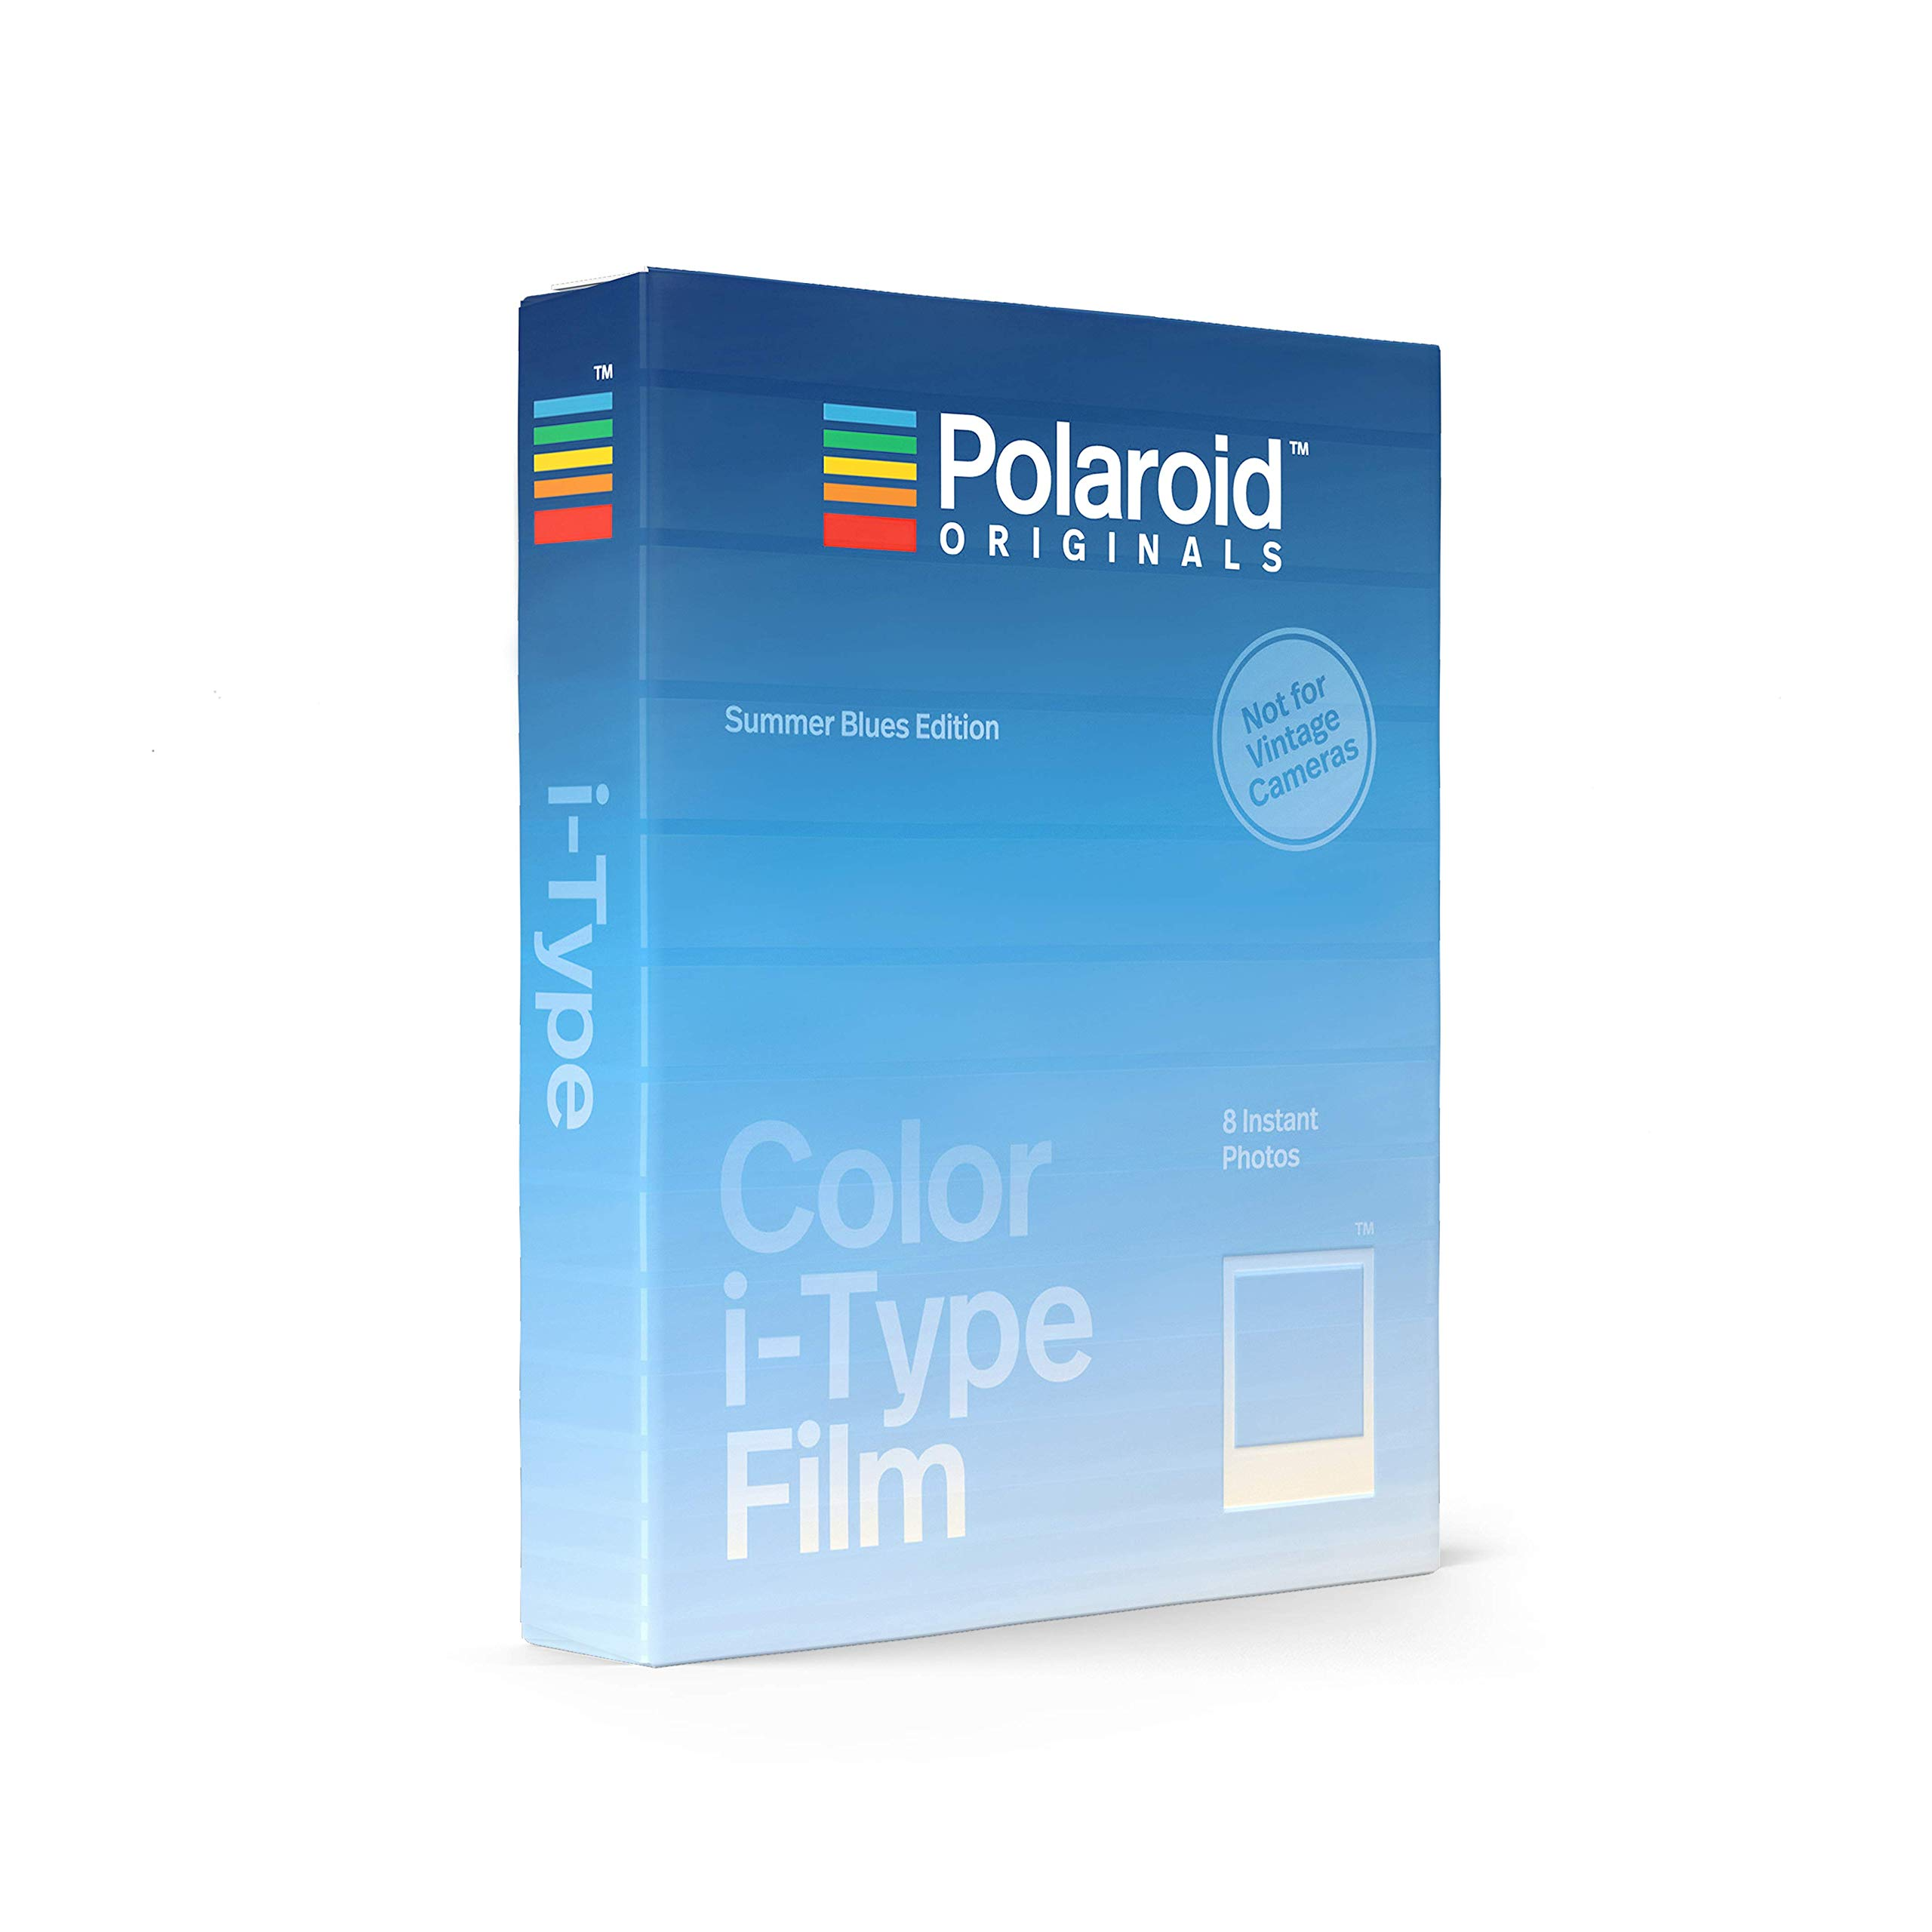 Polaroid Originals Color Film for I-Type - Summer Blues Limited Edition (4927) by Polaroid Originals (Image #2)